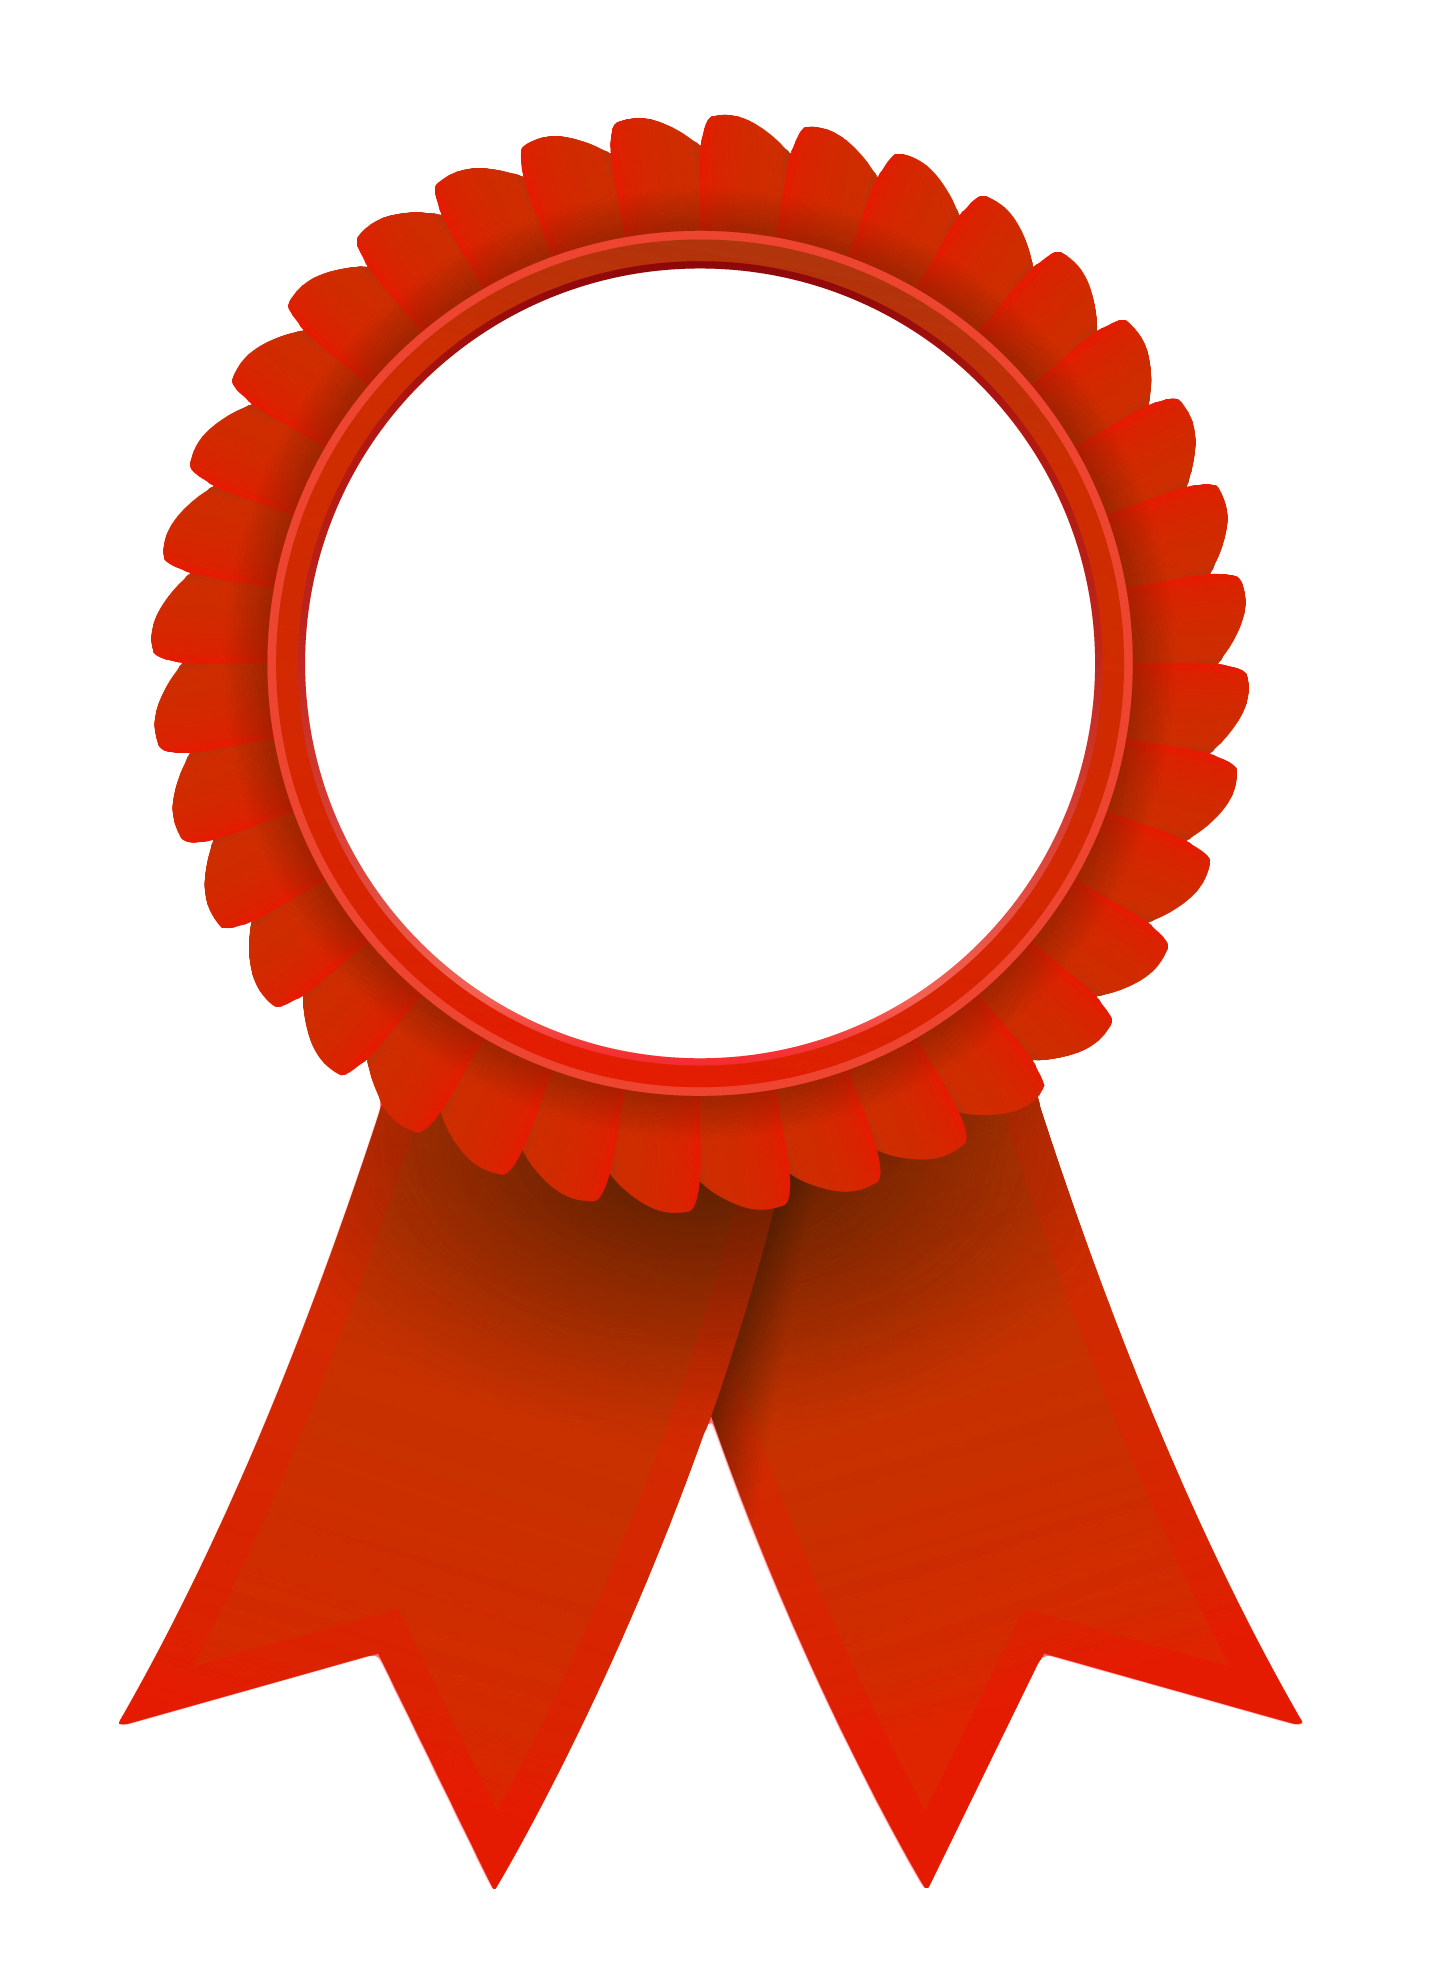 Ribbon Badge PNG Transparent Image - PngPix